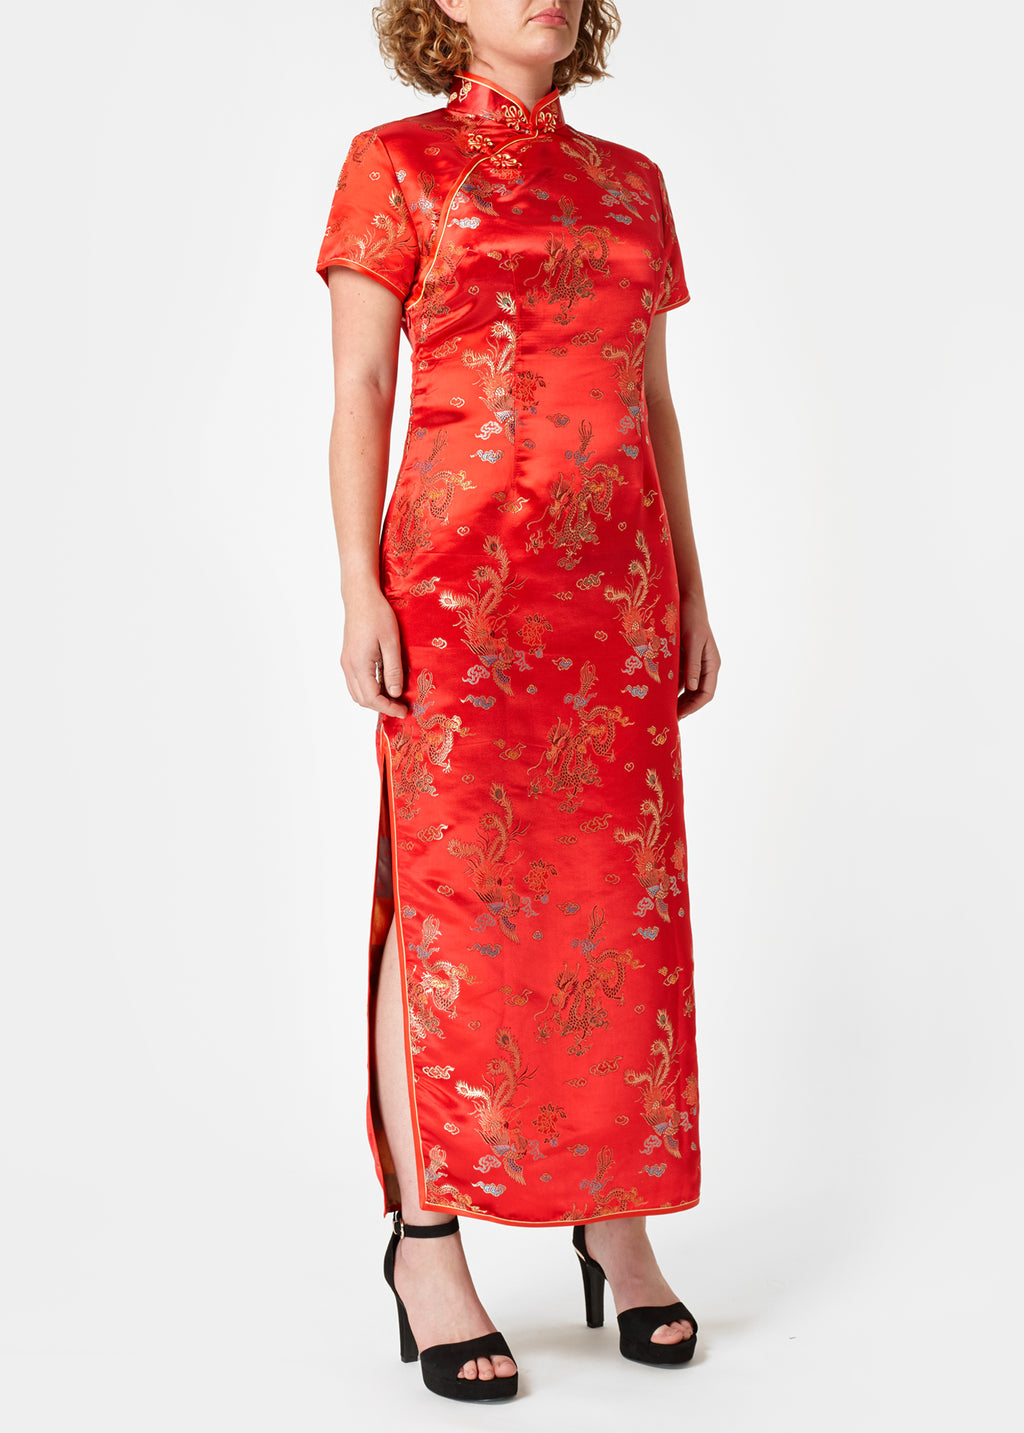 The Cheongsam or Qipao, is a feminine body-hugging dress with distinctive Chinese features of mandarin collar, side splits and hand stitched flower and knot frog fastenings. Manufactured in authentic high quality silk/rayon brocade in a stunning red dragon and phoenix design - a symbol success and prosperity